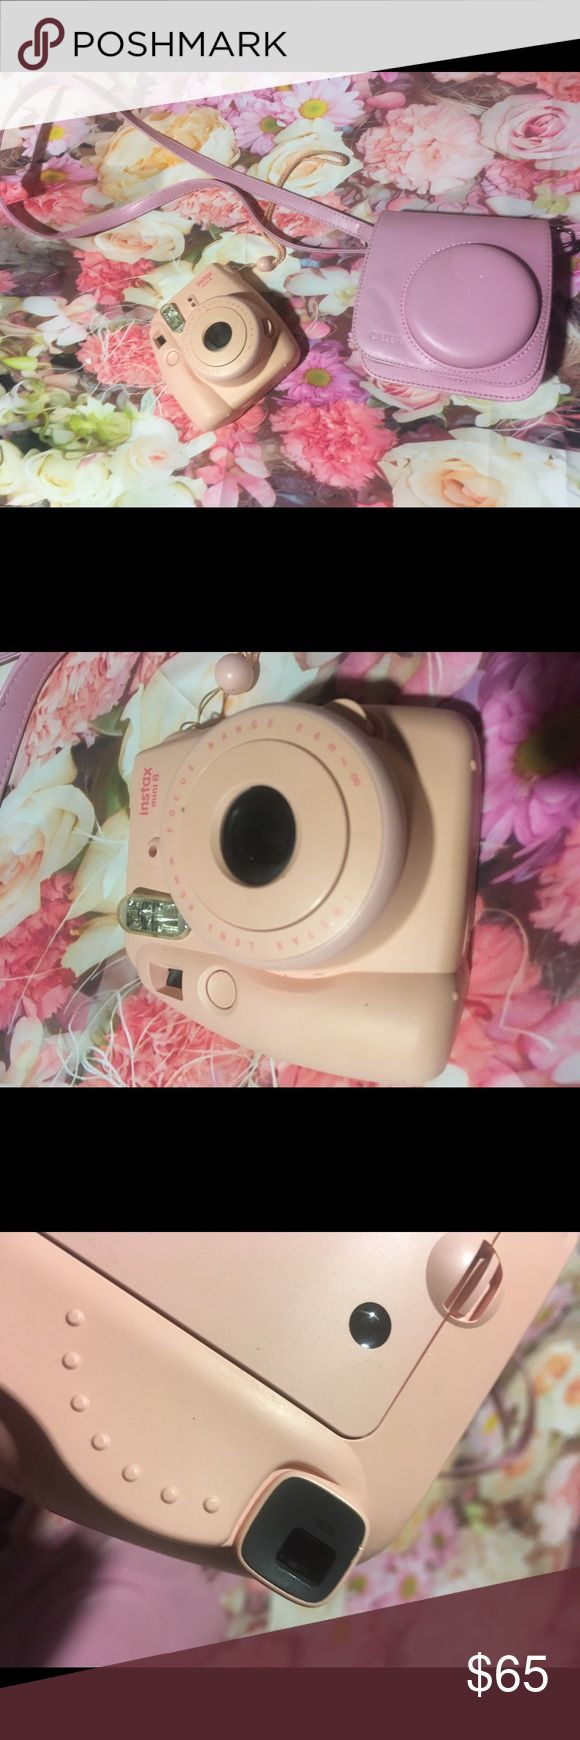 Final price ! Pink instax mini  8 camera In used working condition fuji Other